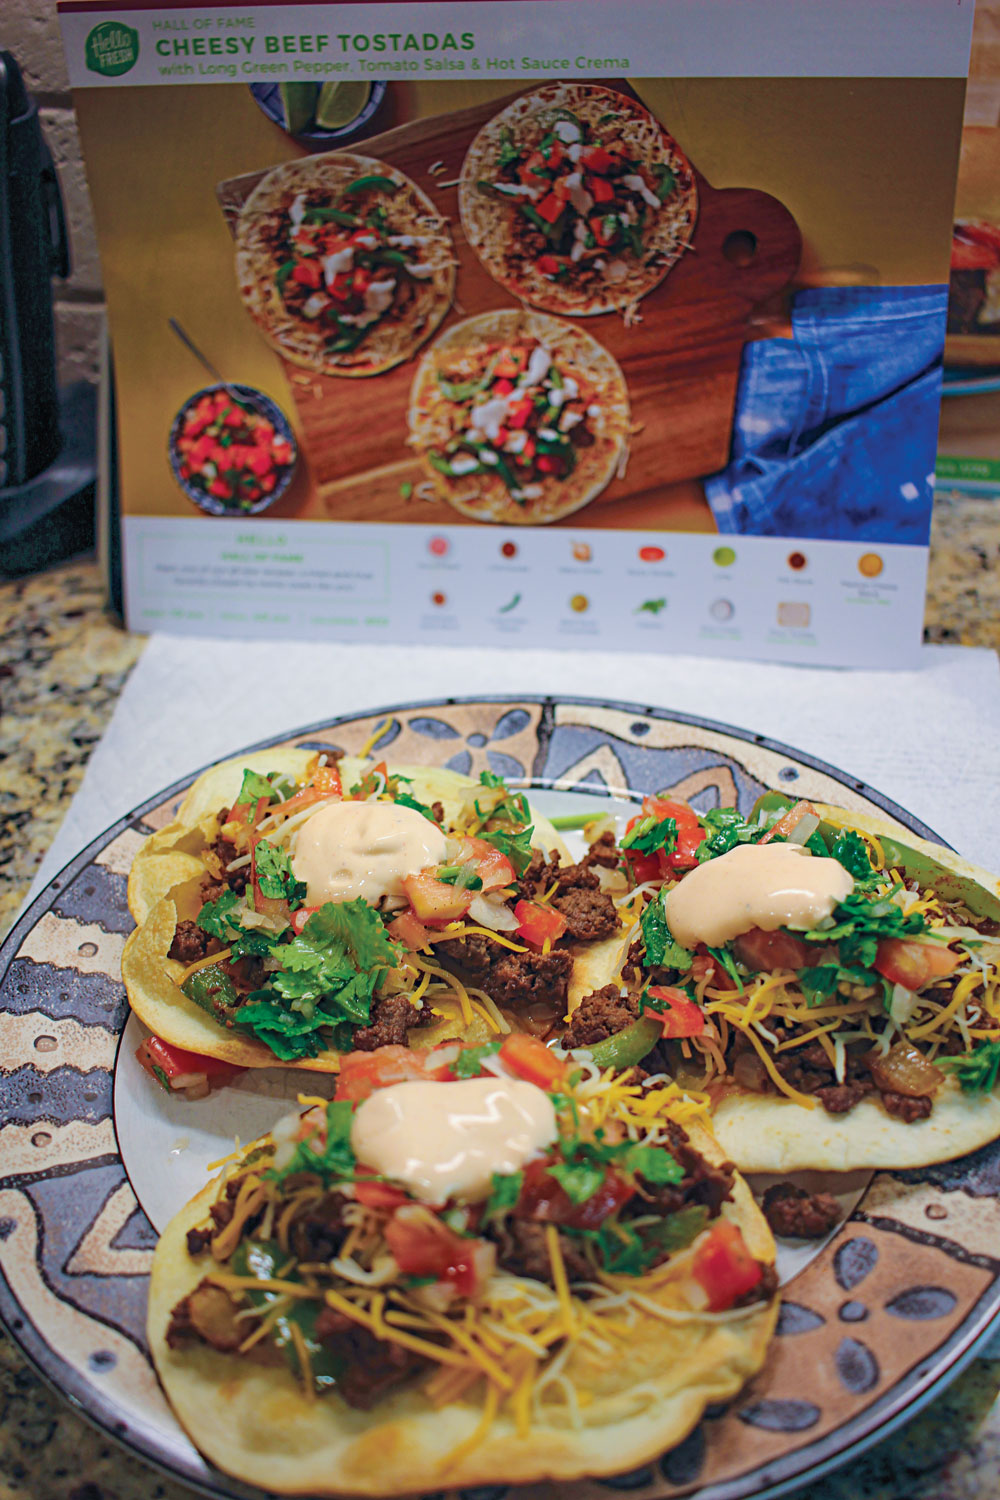 Deliveries from HelloFresh were clutch for planning and preparing meals.